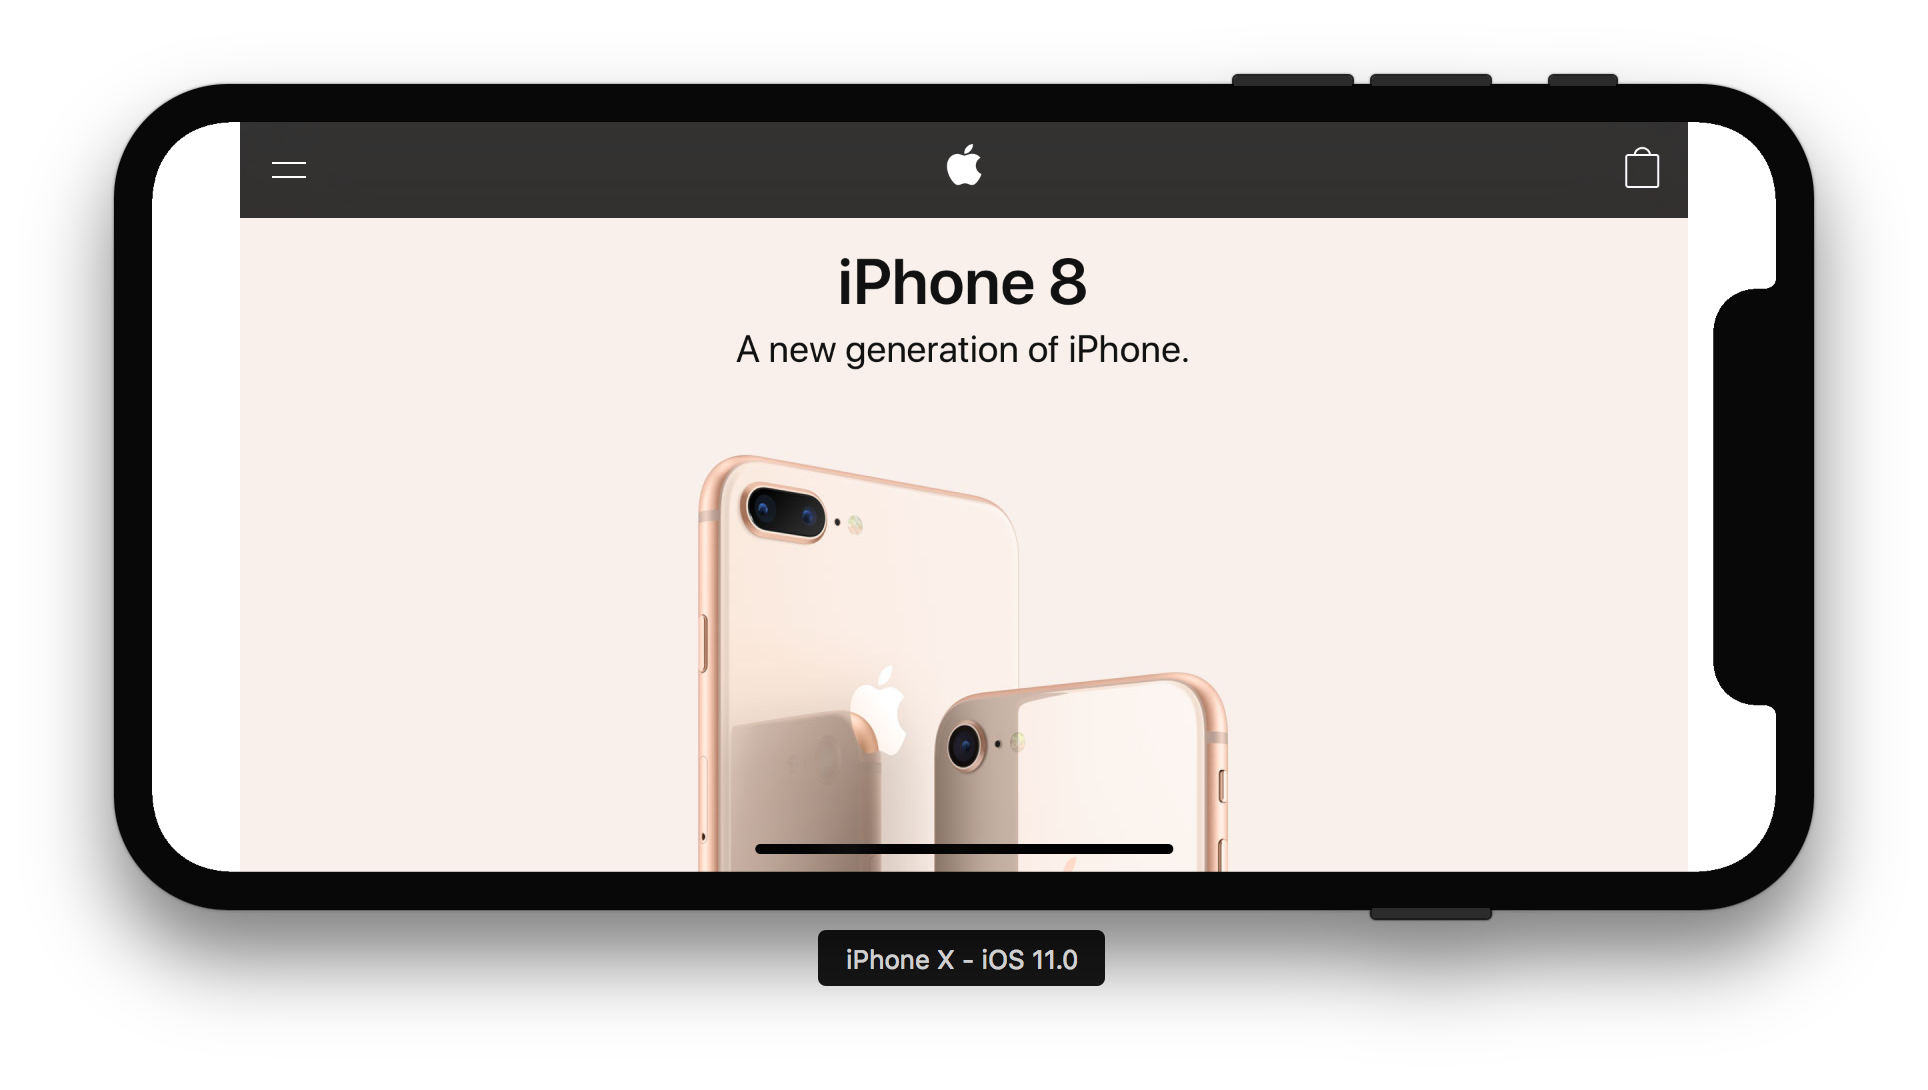 Iphone x status bar png. How will existing apps